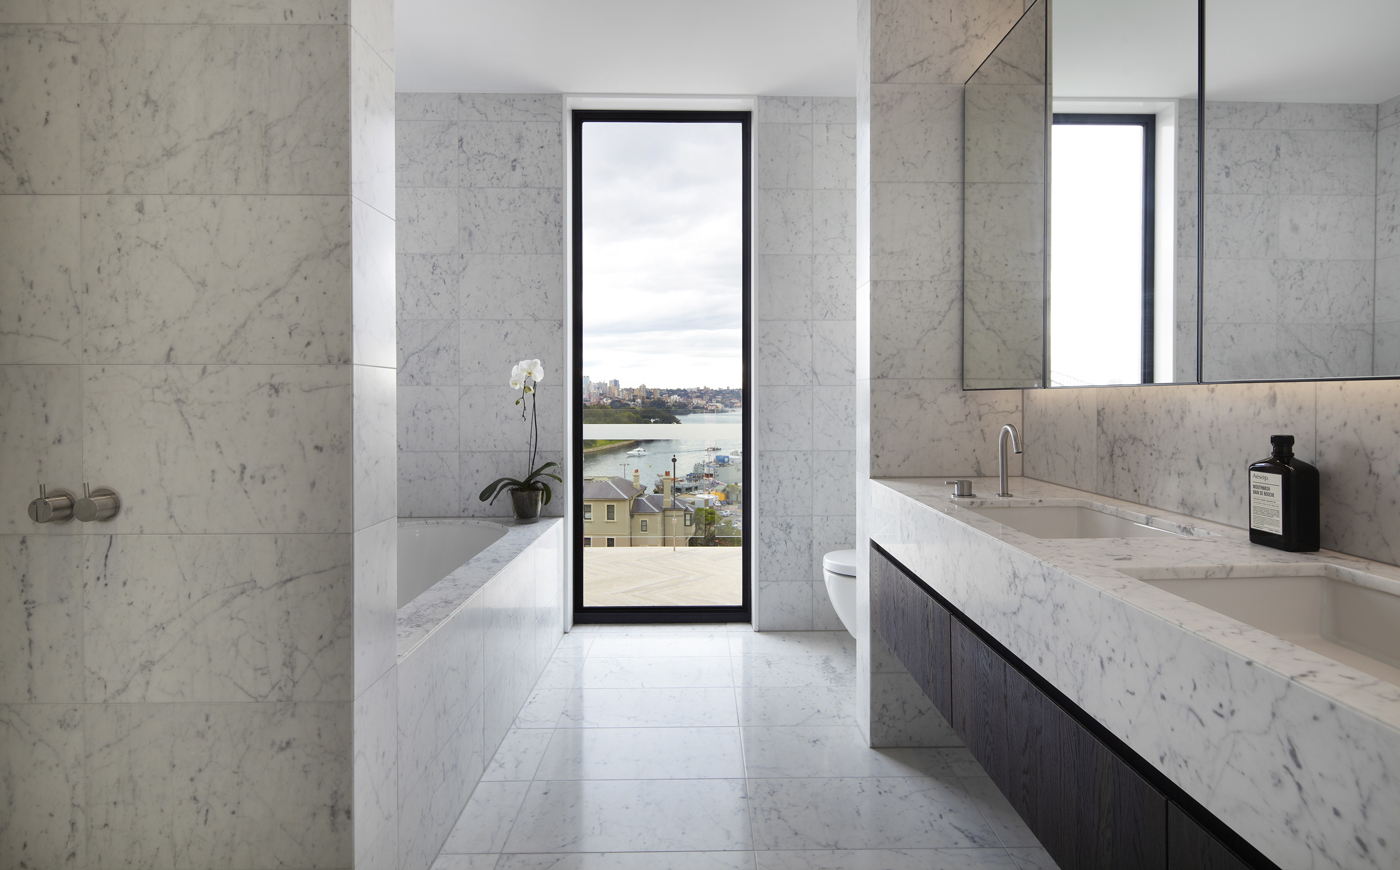 Bathroom Tiles Sydney surface gallery | marble tiles, limestone tiles, travertine tiles